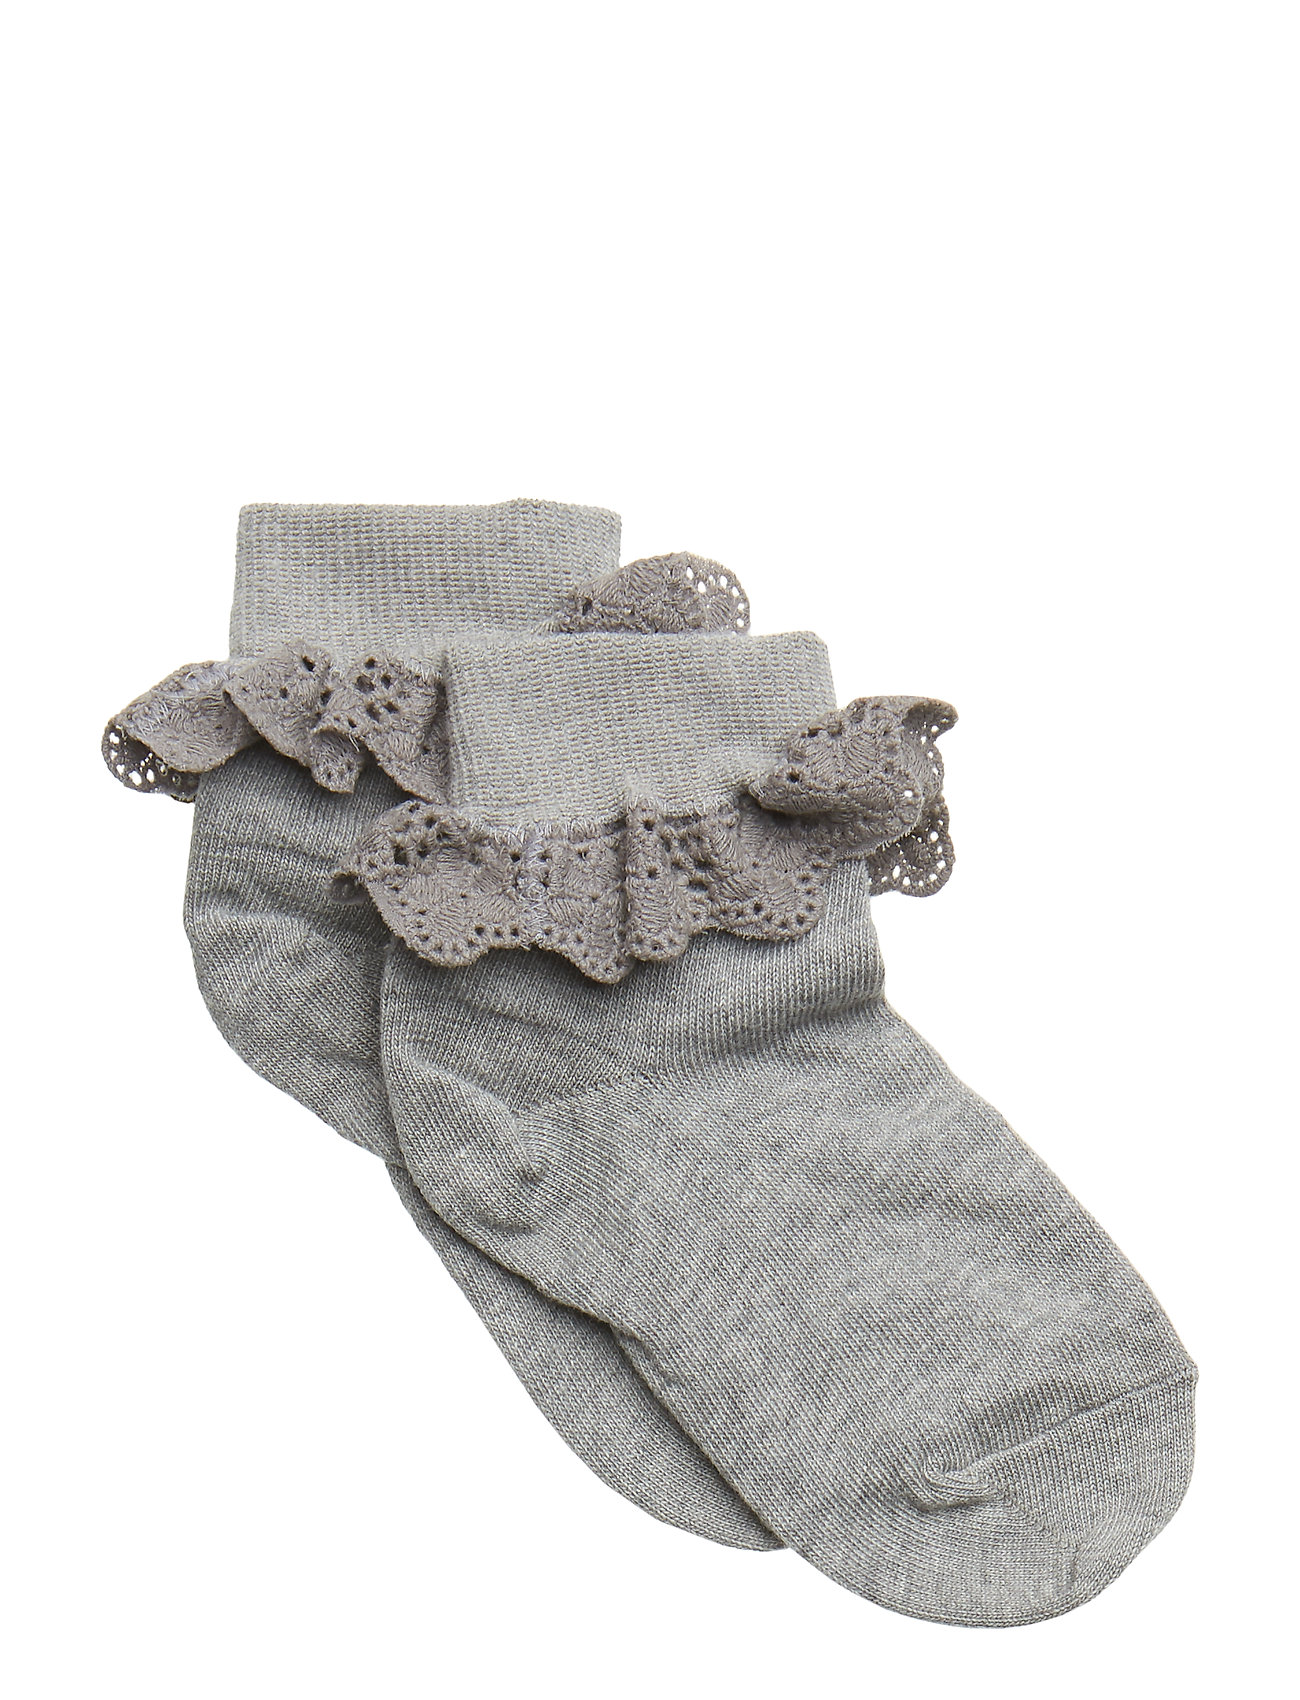 mp Denmark ANKLESOCK WITH TRIMMED LACE - GREY MARL.